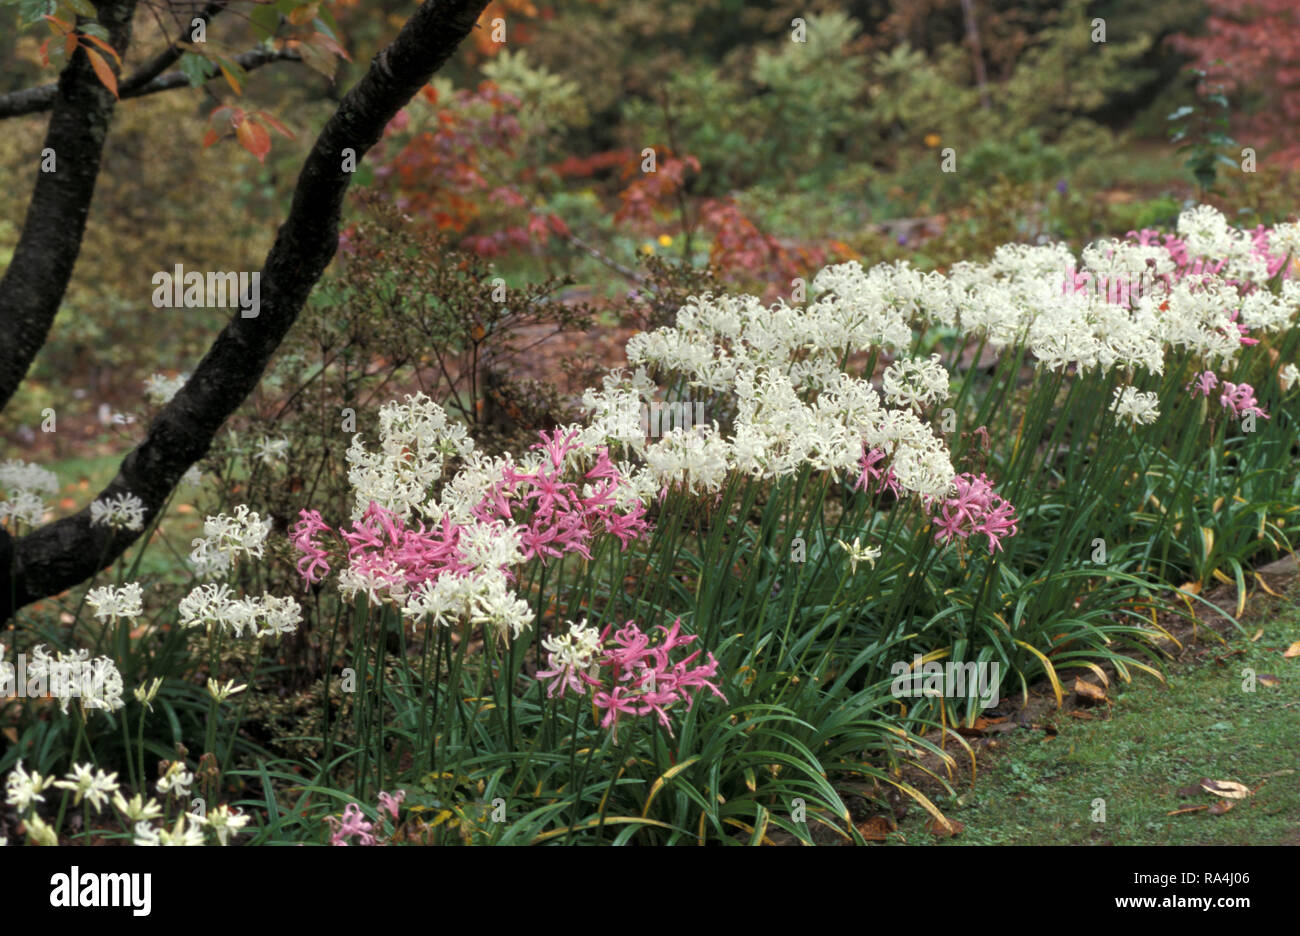 GARDEN BED OF NERINE BOWDENII (KNOWN AS PINK AGAPANTHUS OR LARGE PINK NERINE). BLUE MOUNTAINS, NEW SOUTH WALES, AUSTRALIA - Stock Image